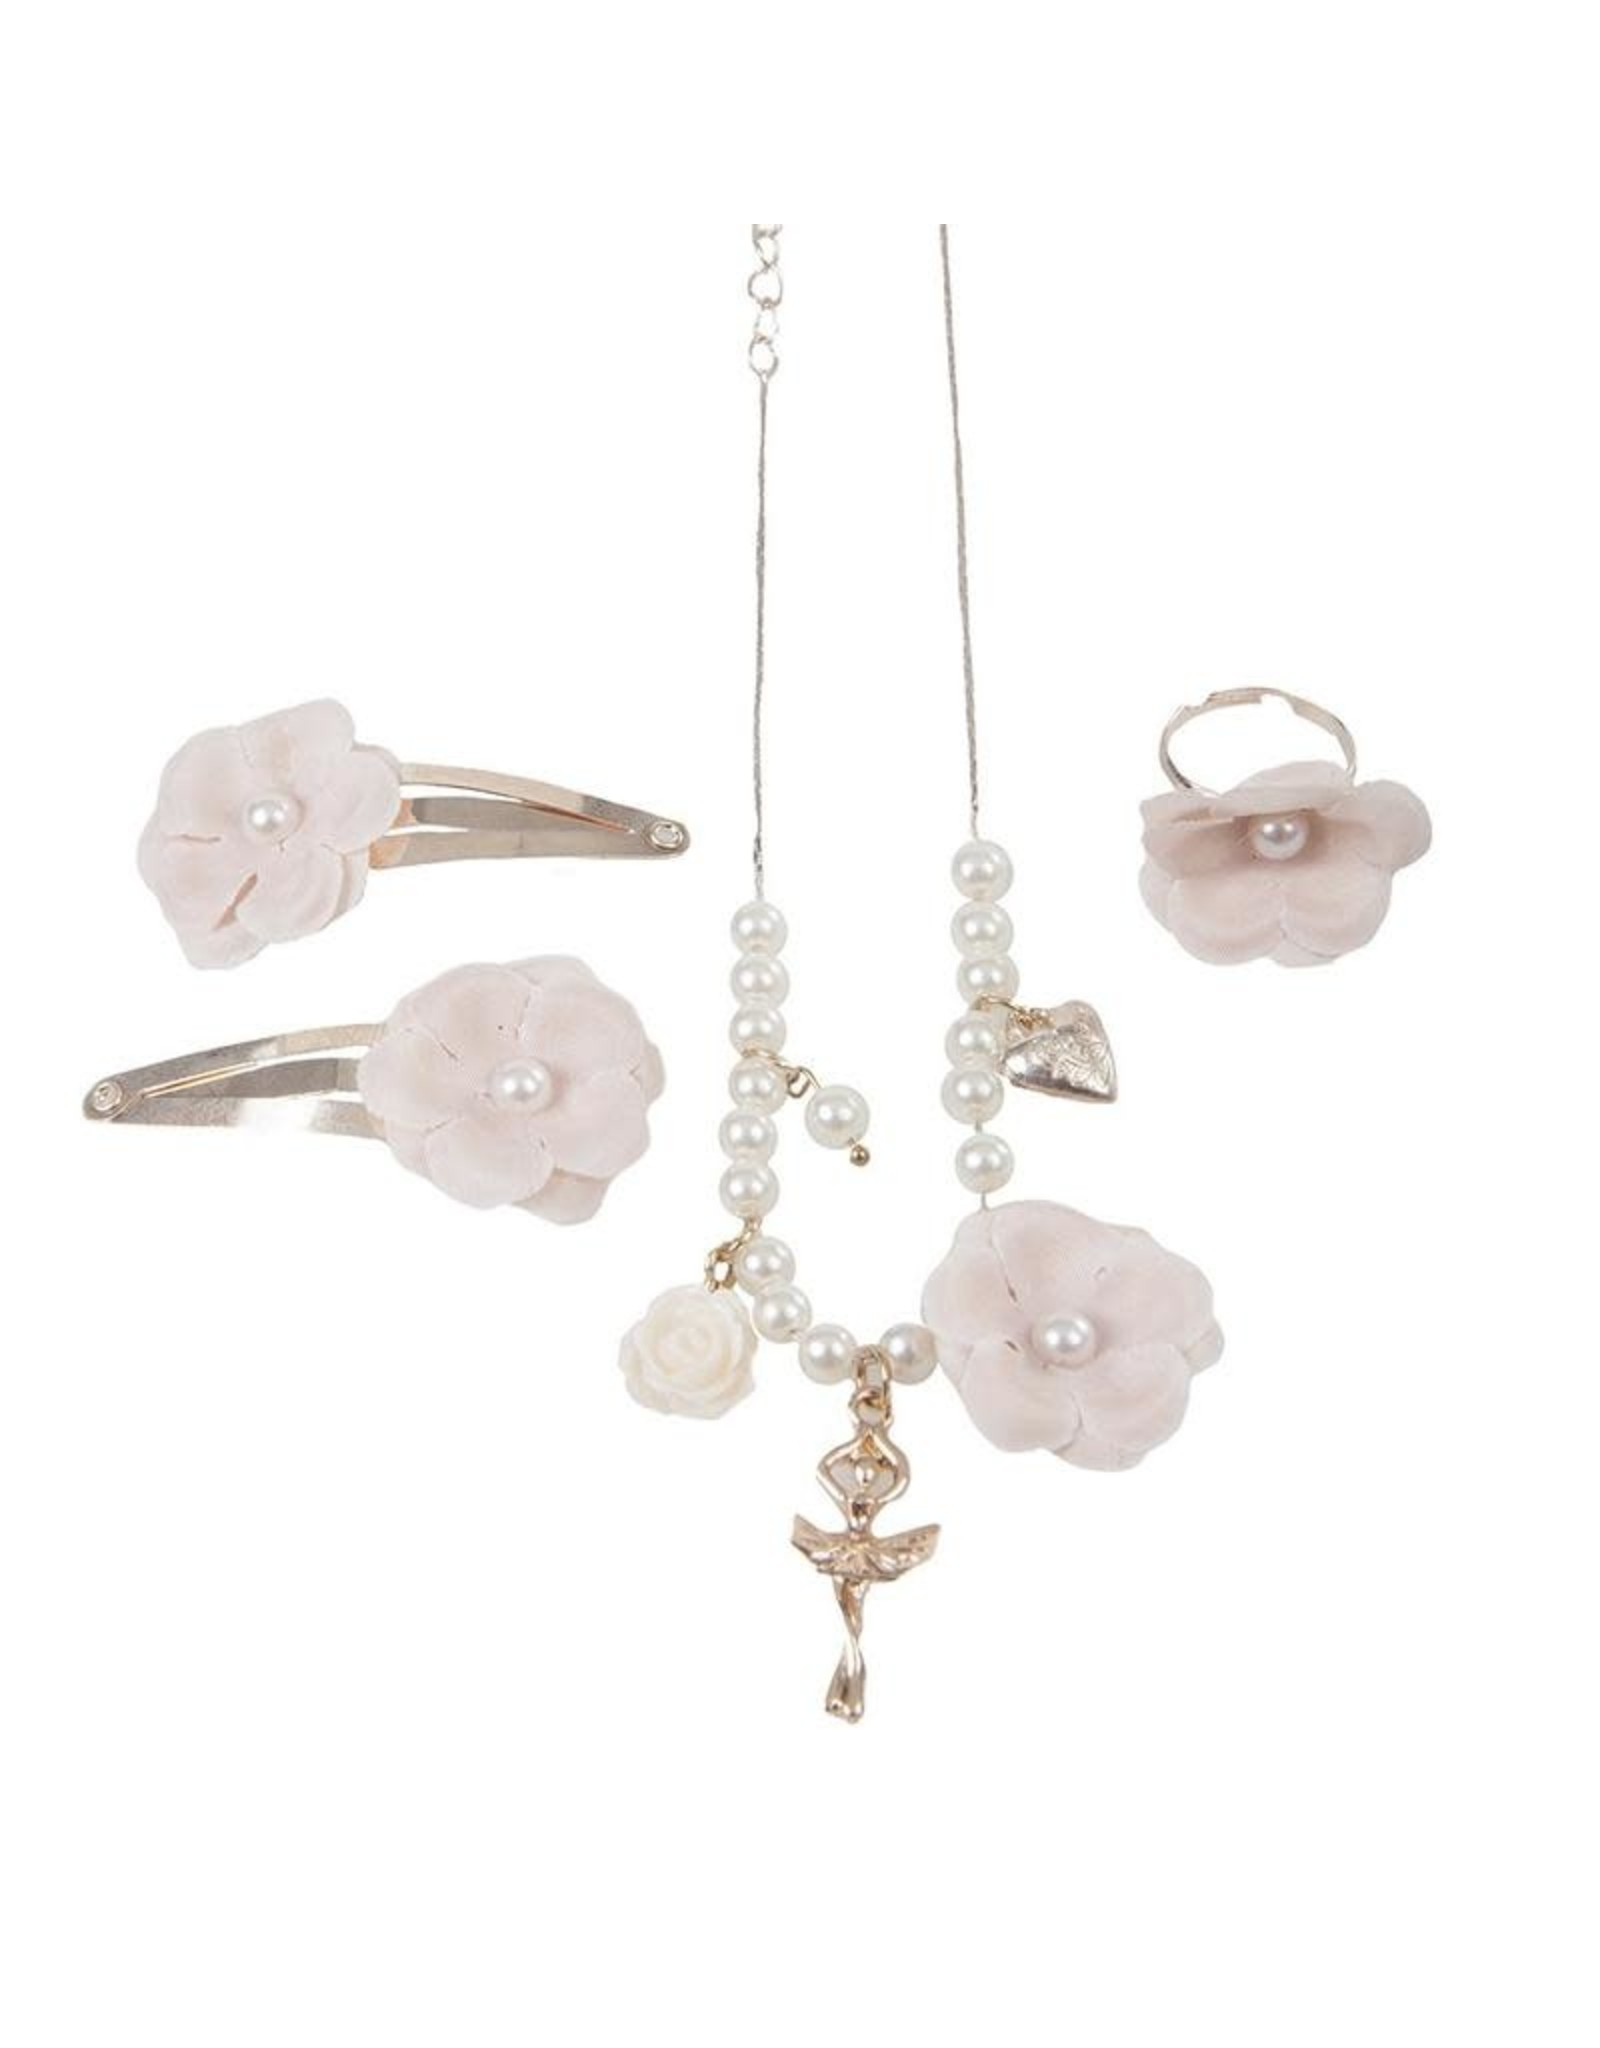 Great Pretenders Ballet Dreams Necklace, Ring & Clips